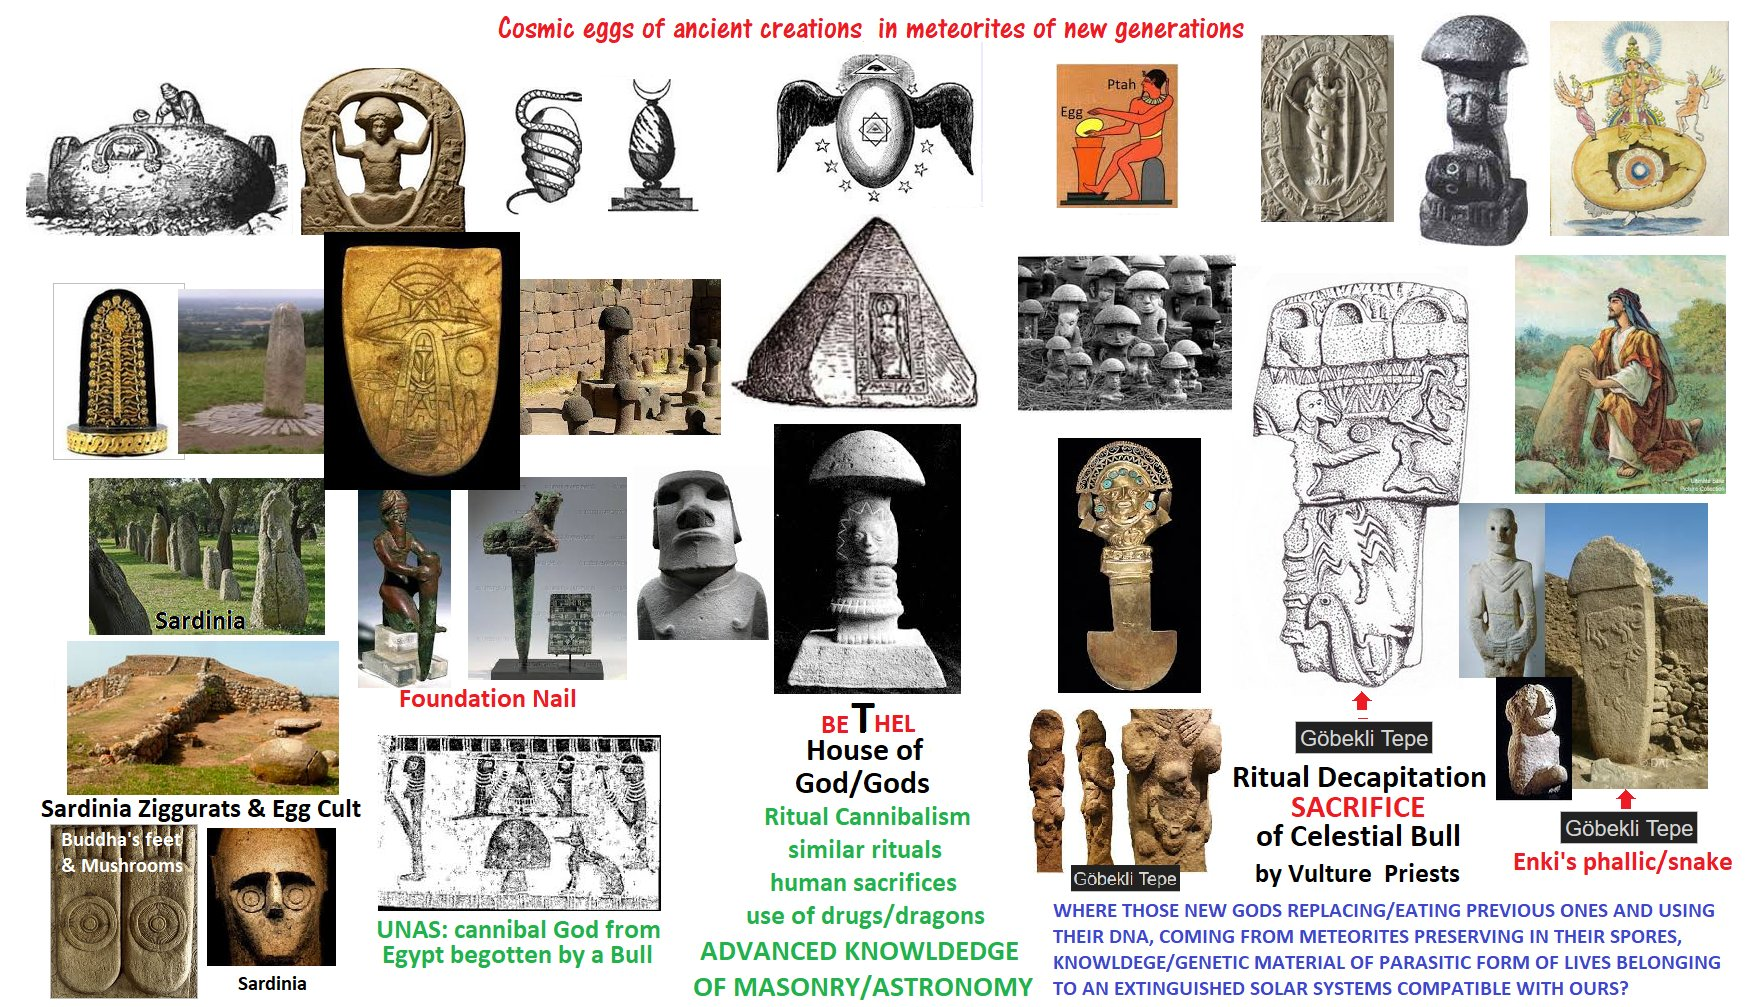 Image Bethel House of God/Gods and Ritual Cannibalism and human sacrifice - Pablo Hasel decoded by Enchanted LifePath featuring Tweet by Nadia Cinque @nadiacinque on Twitter